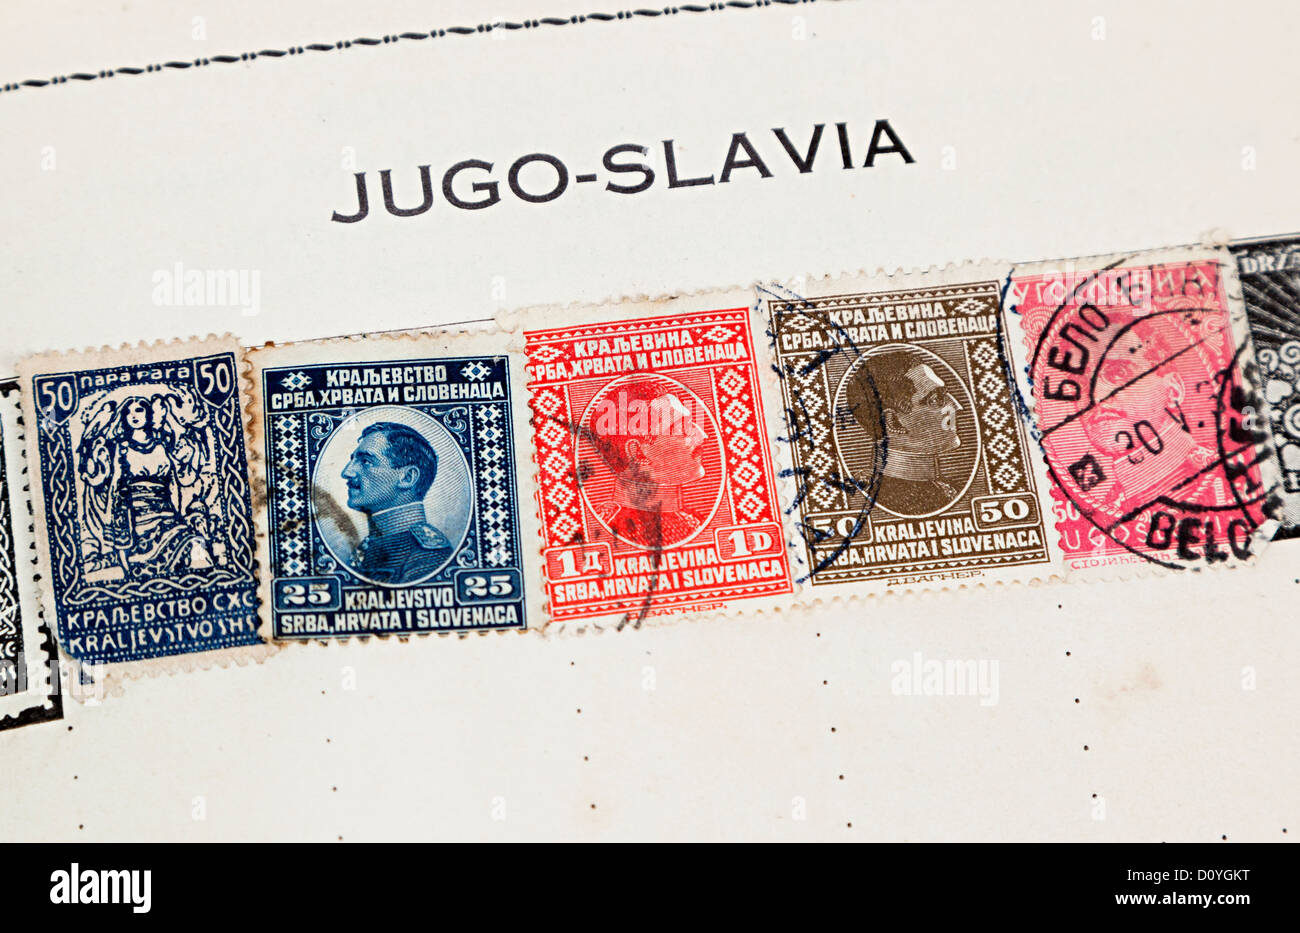 Old stamp album with country name Jugoslavia - Stock Image